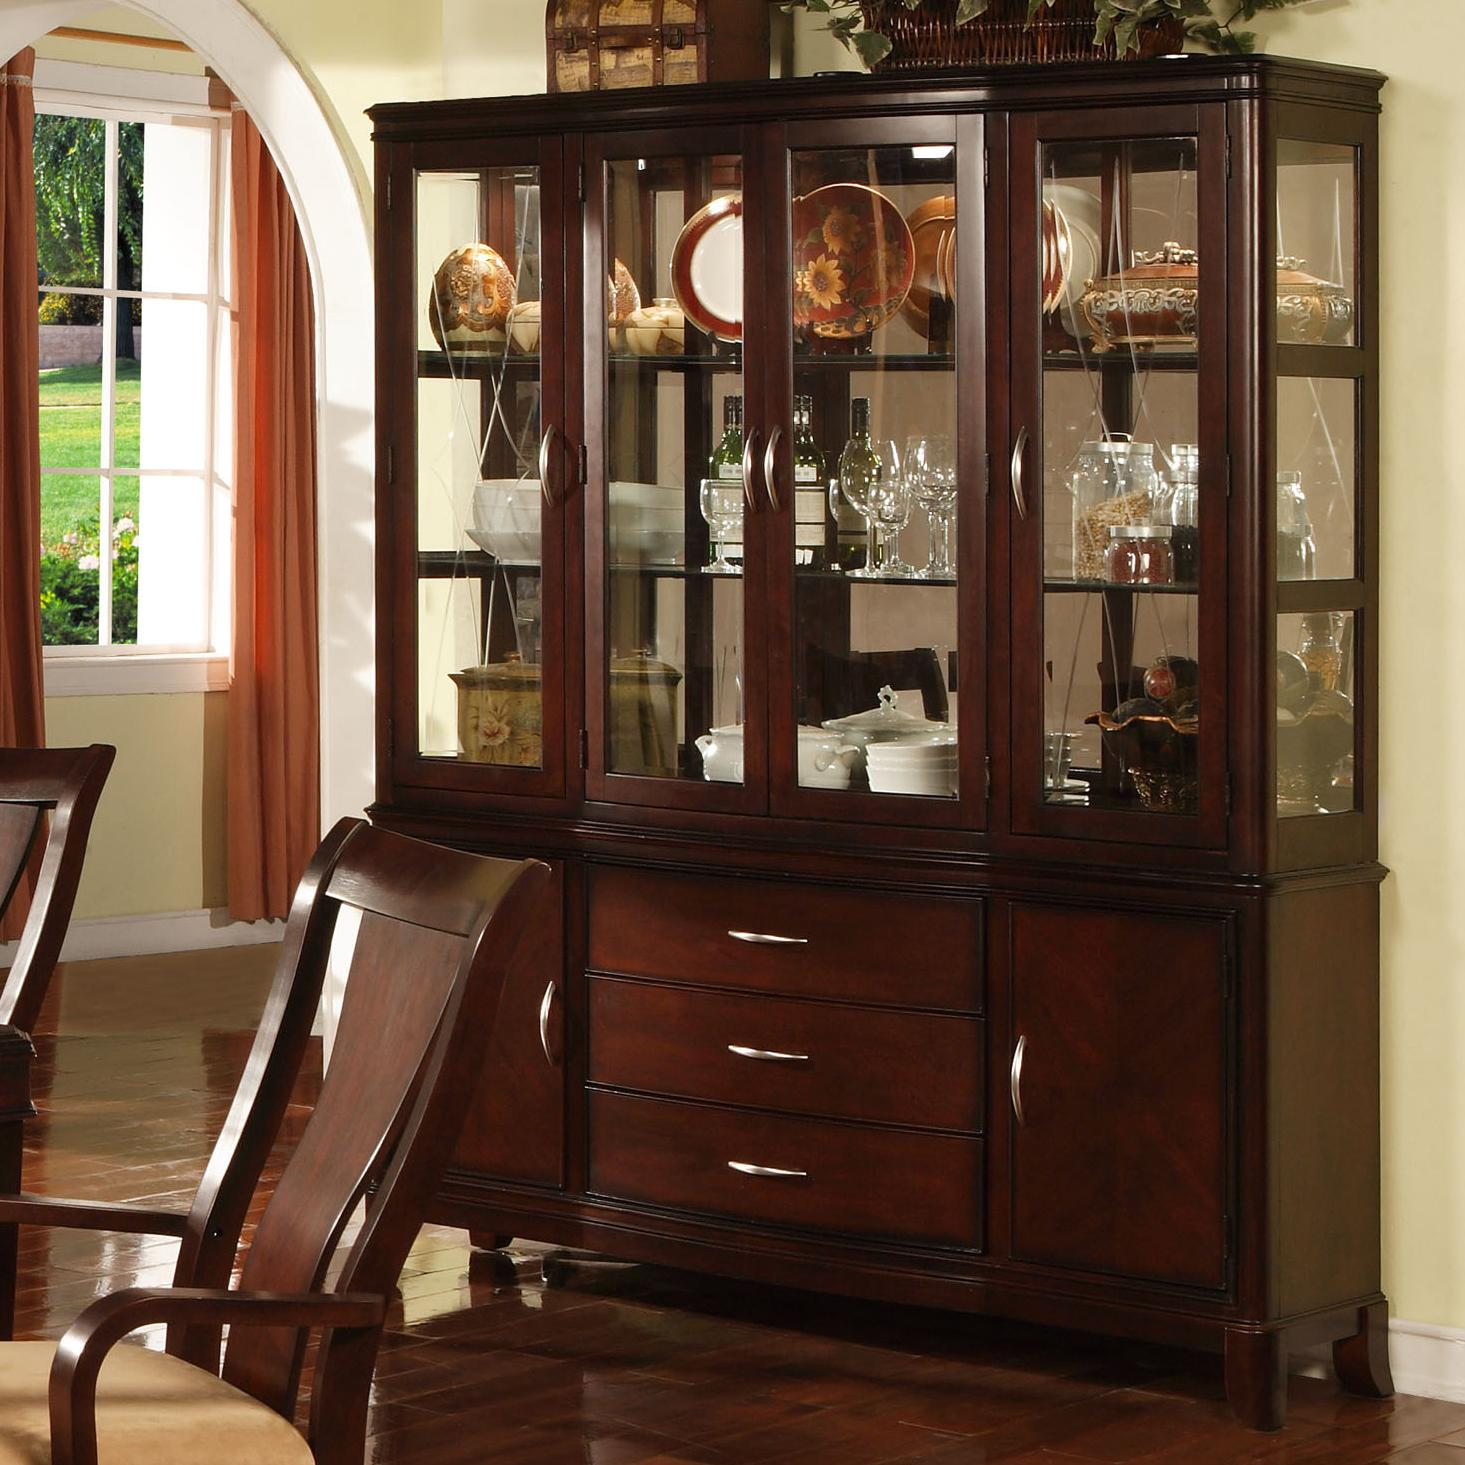 Holland house sansom place buffet hutch china cabinet